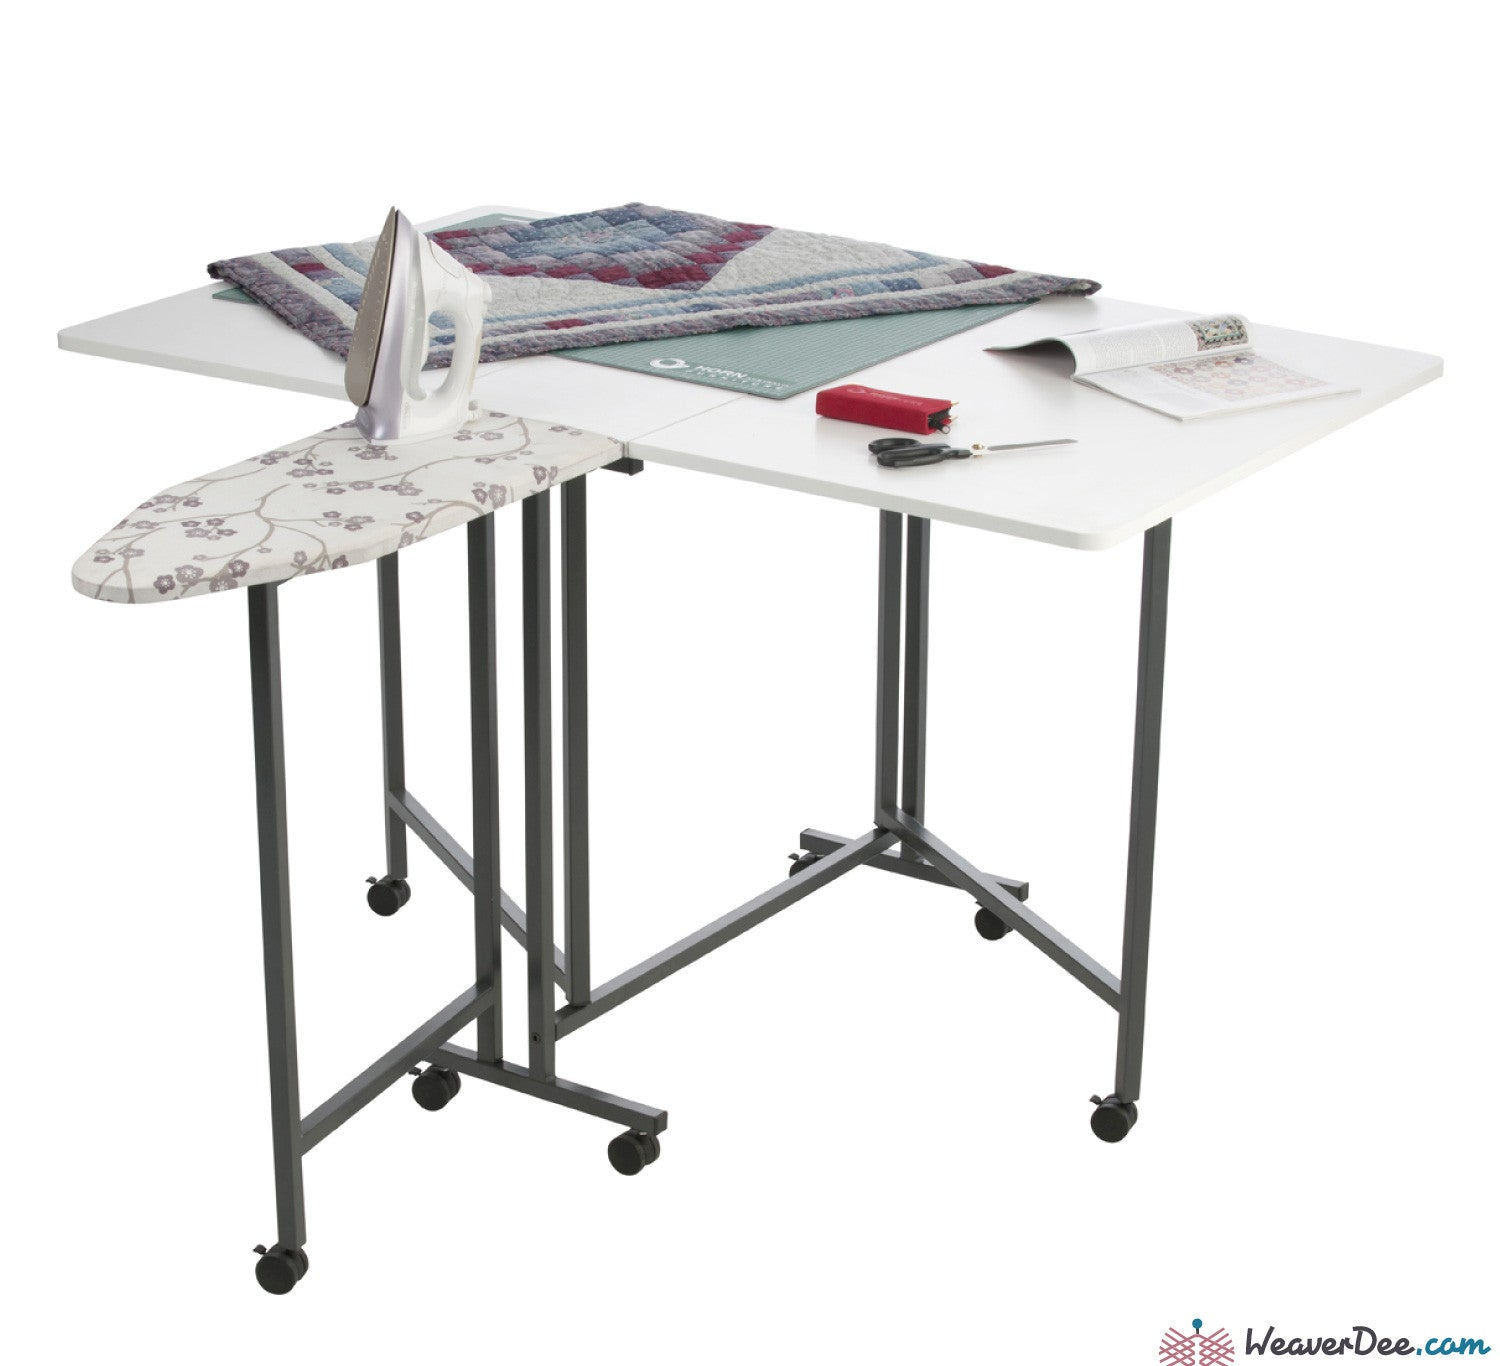 Horn - Horn Cut Easy MK2 Sewing Table - WeaverDee.com Sewing & Crafts - 1